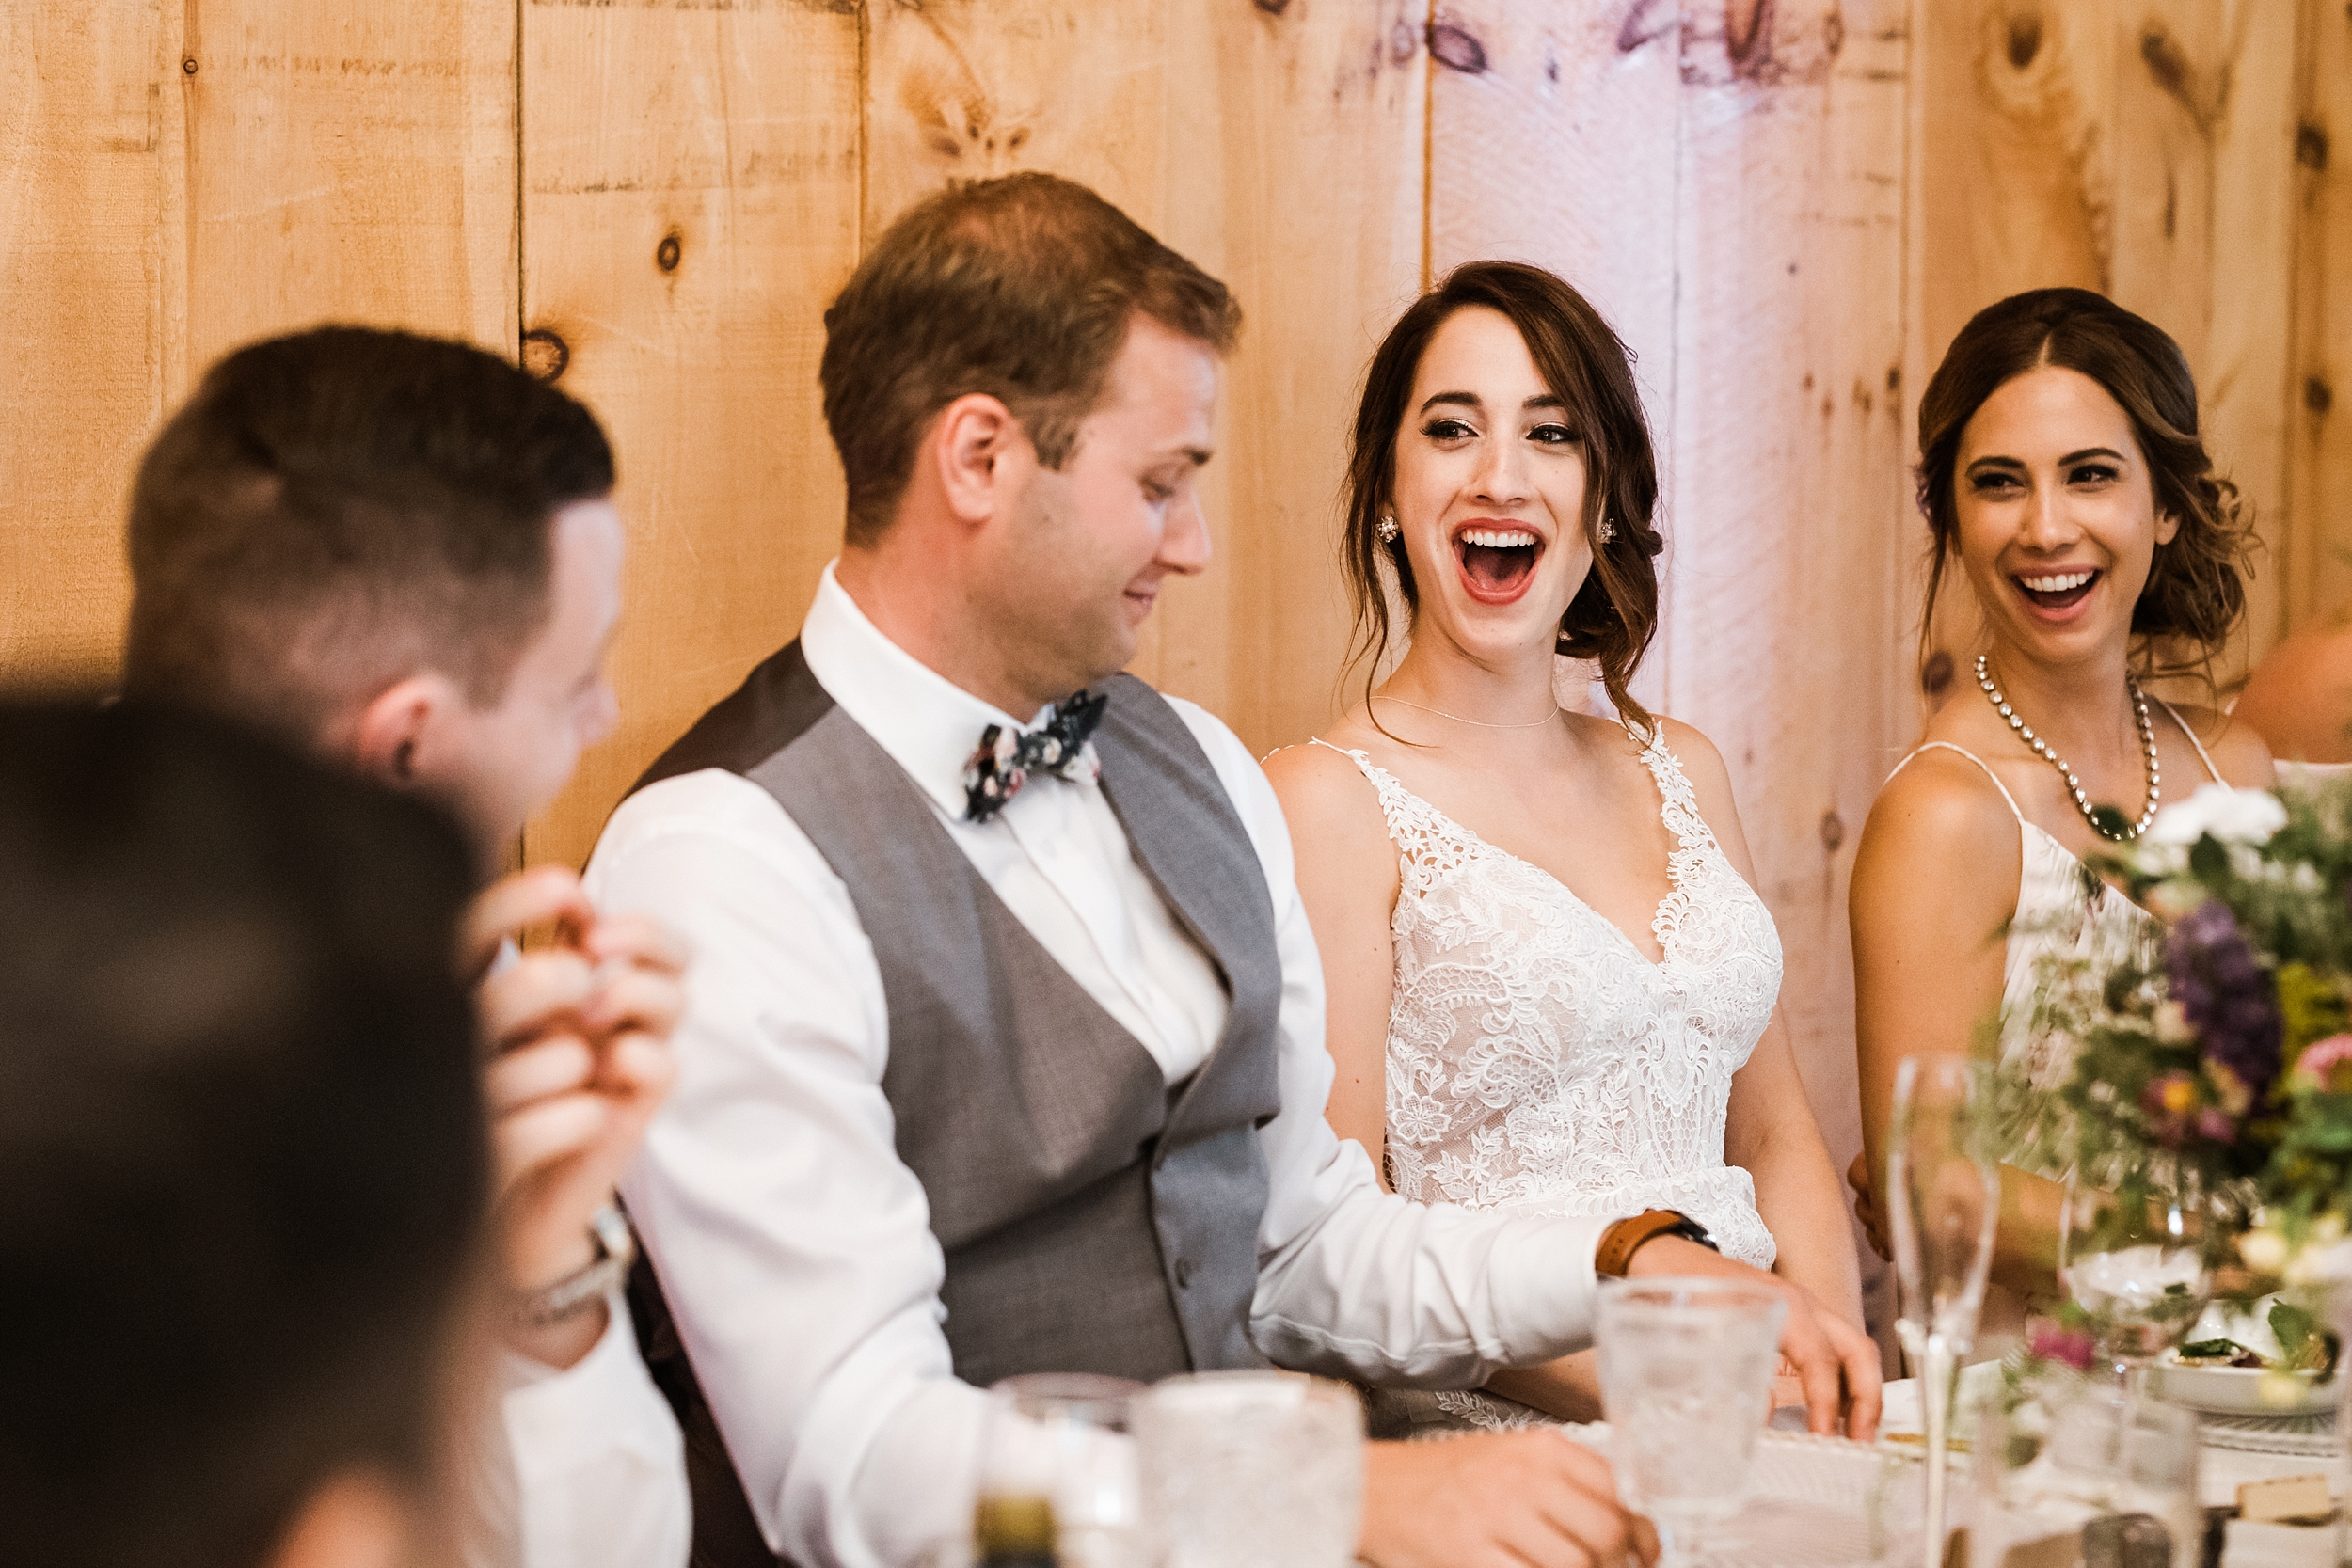 stonewallestates-weddingphotography_0055.jpg